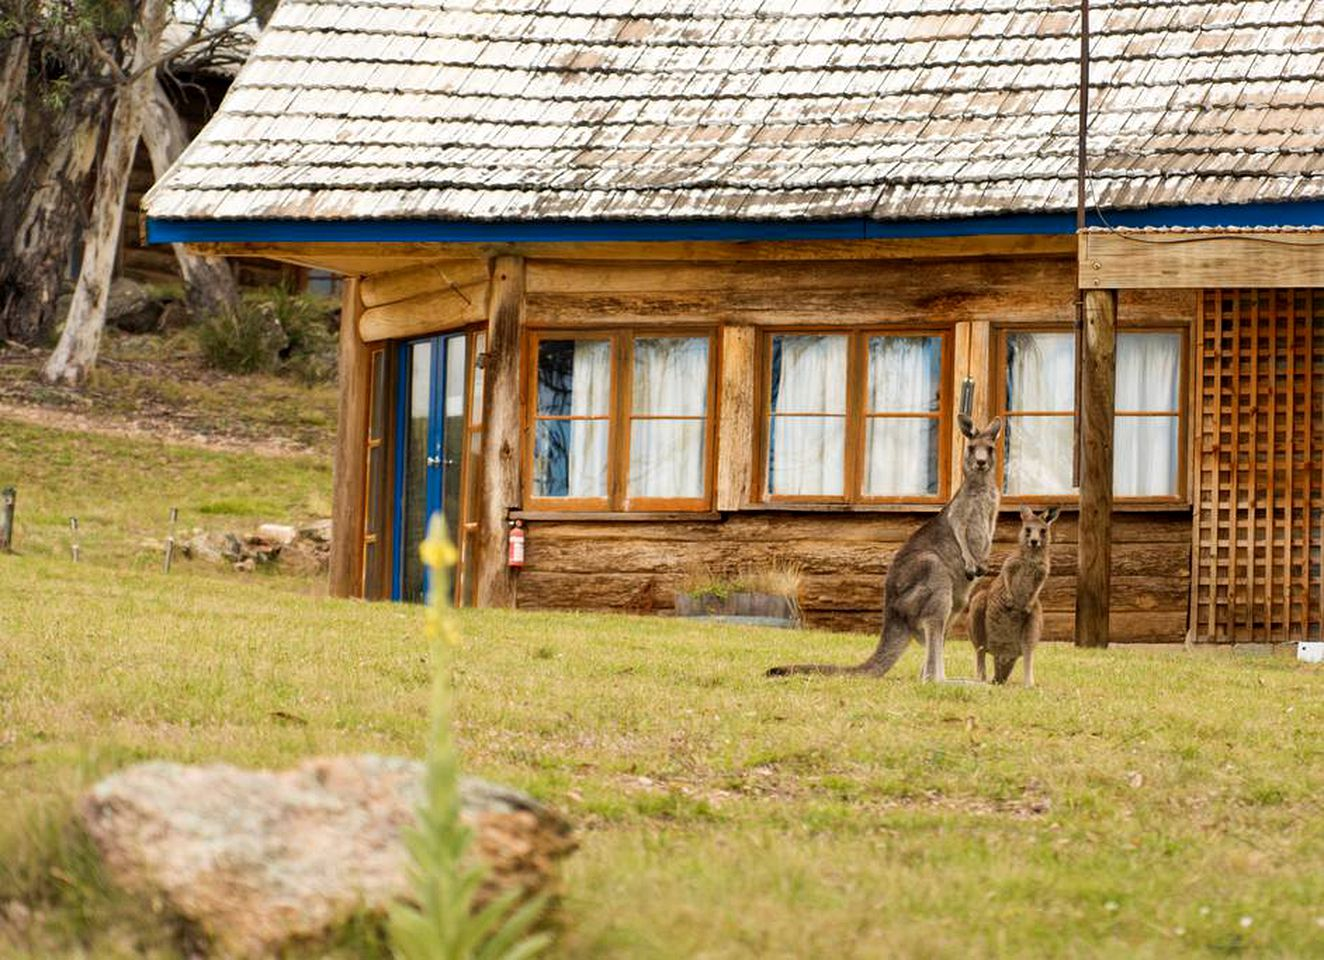 Brown log cabin with blue paint and snowy roof with two kangaroos outside.